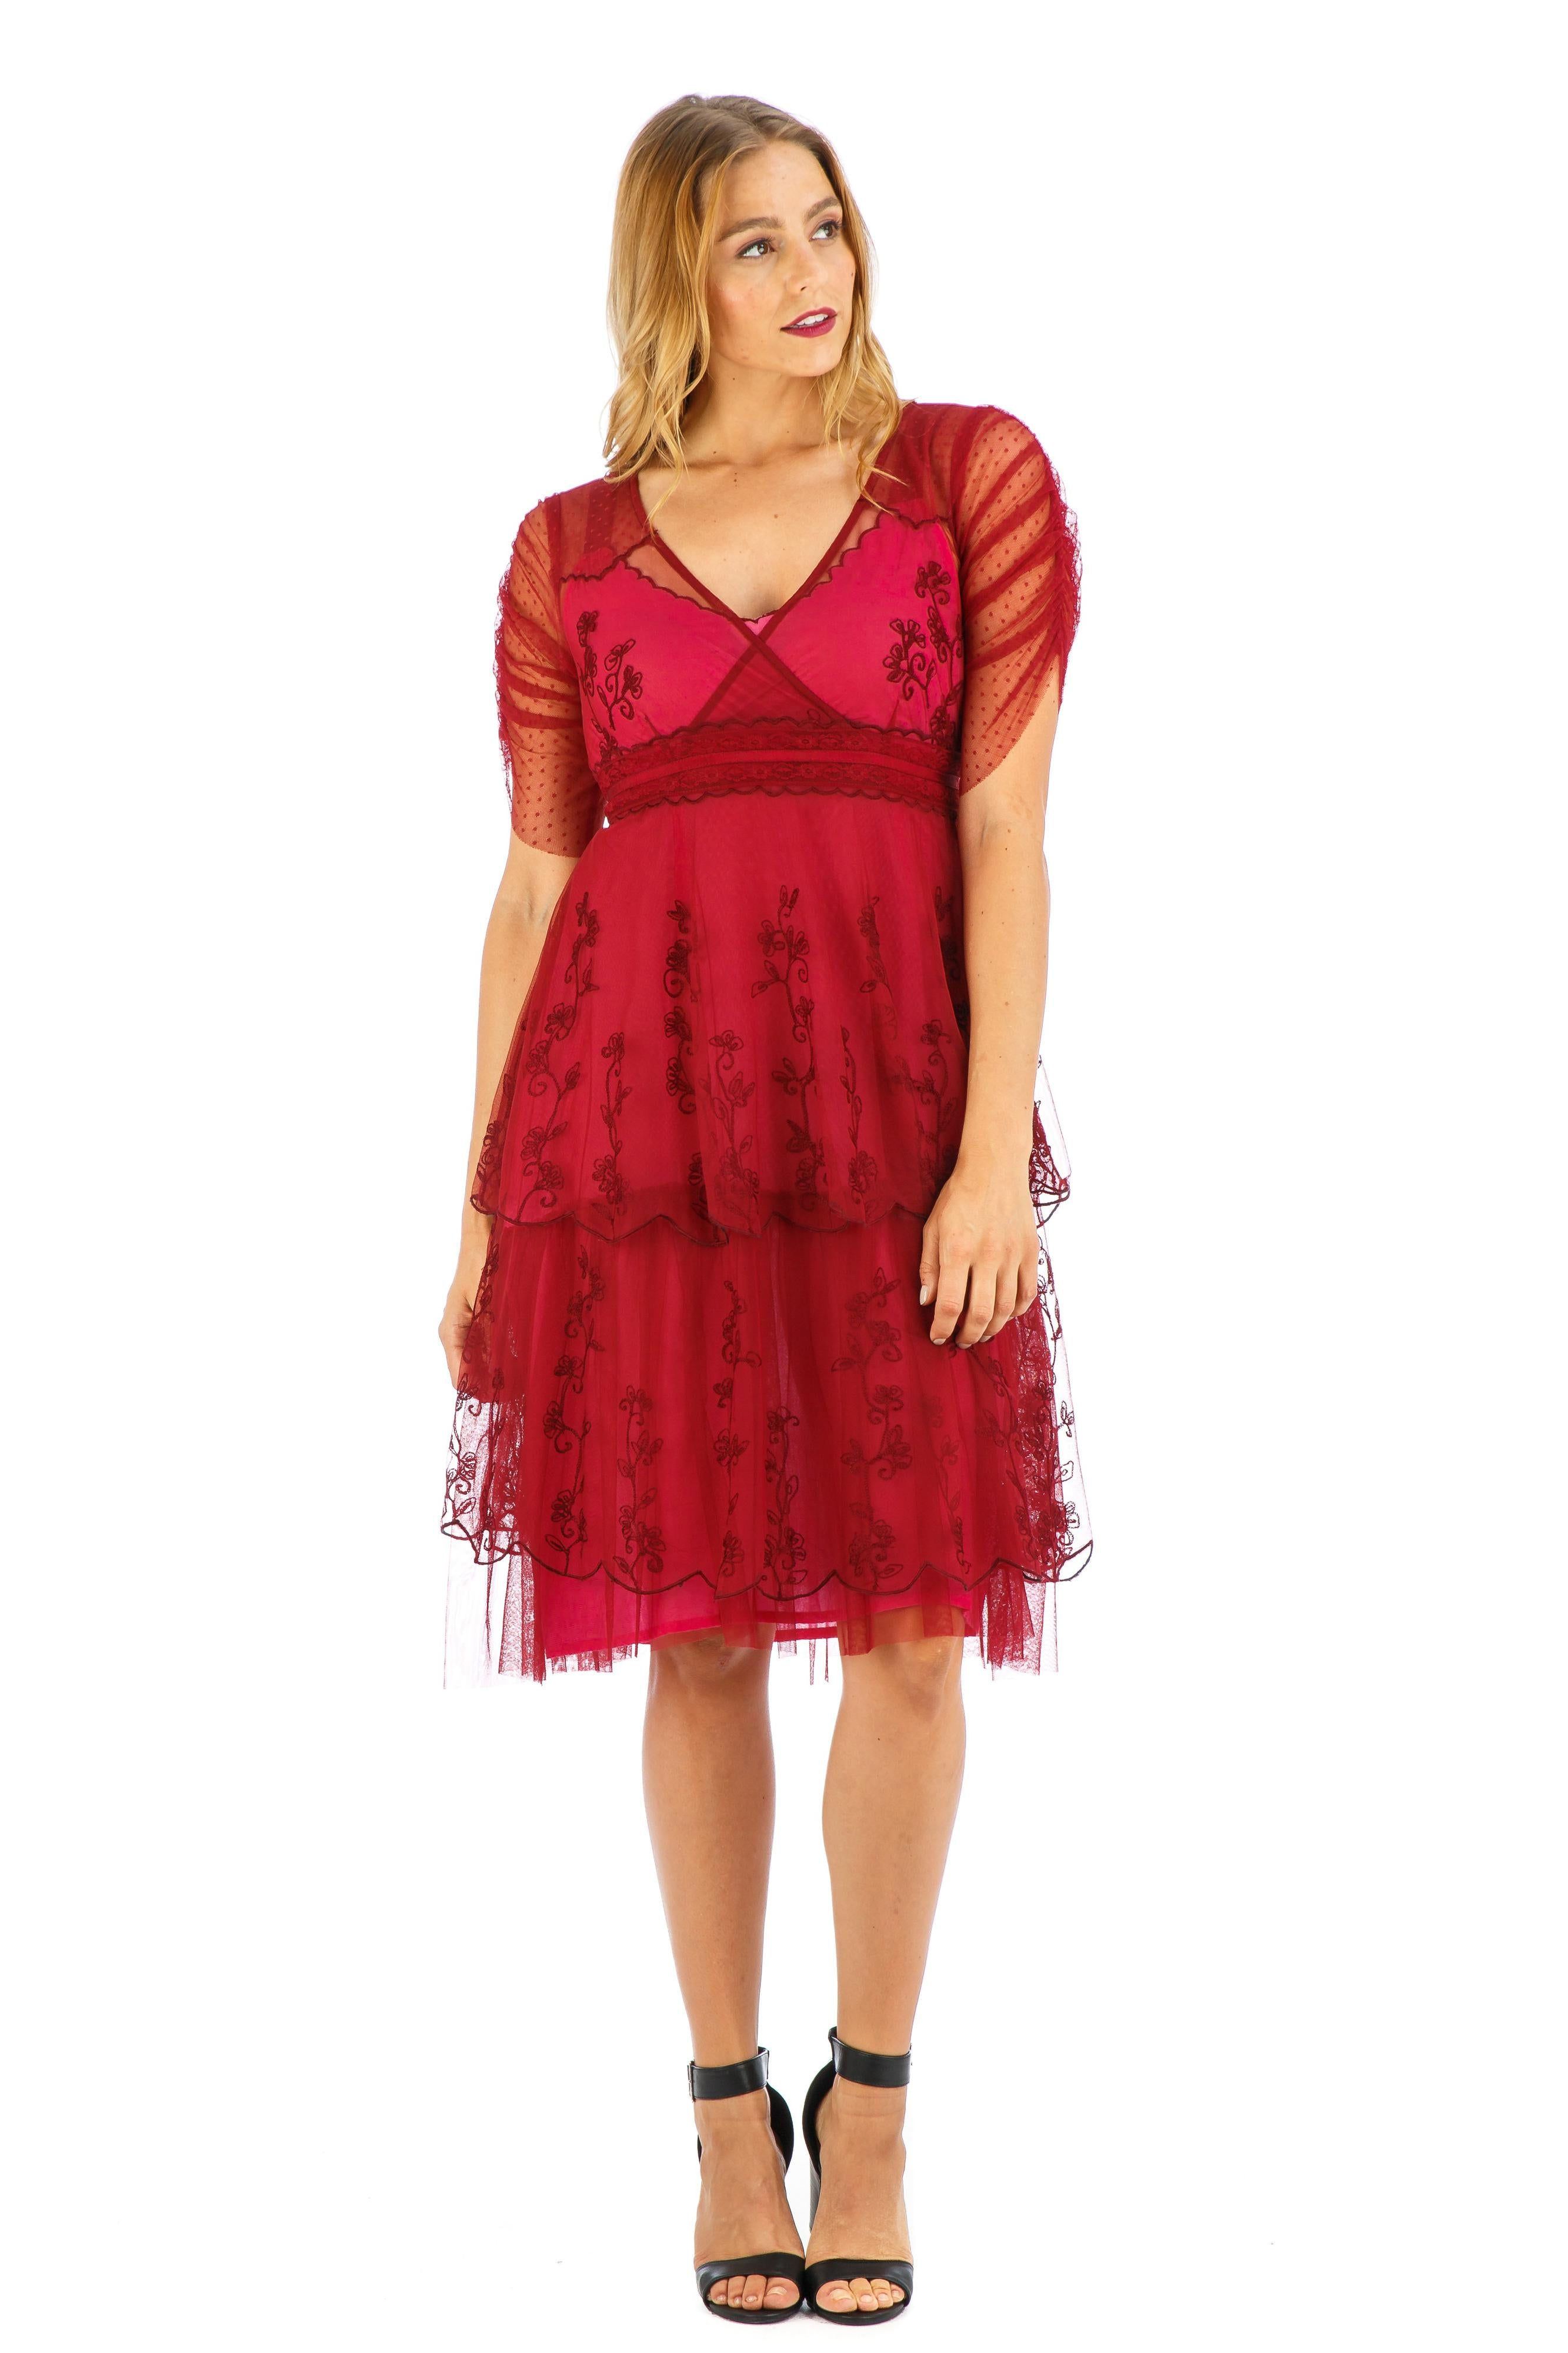 1920s Style Dresses, 20s Dresses Zoey Vintage Style Party Dress in Raspberry by Nataya $192.00 AT vintagedancer.com